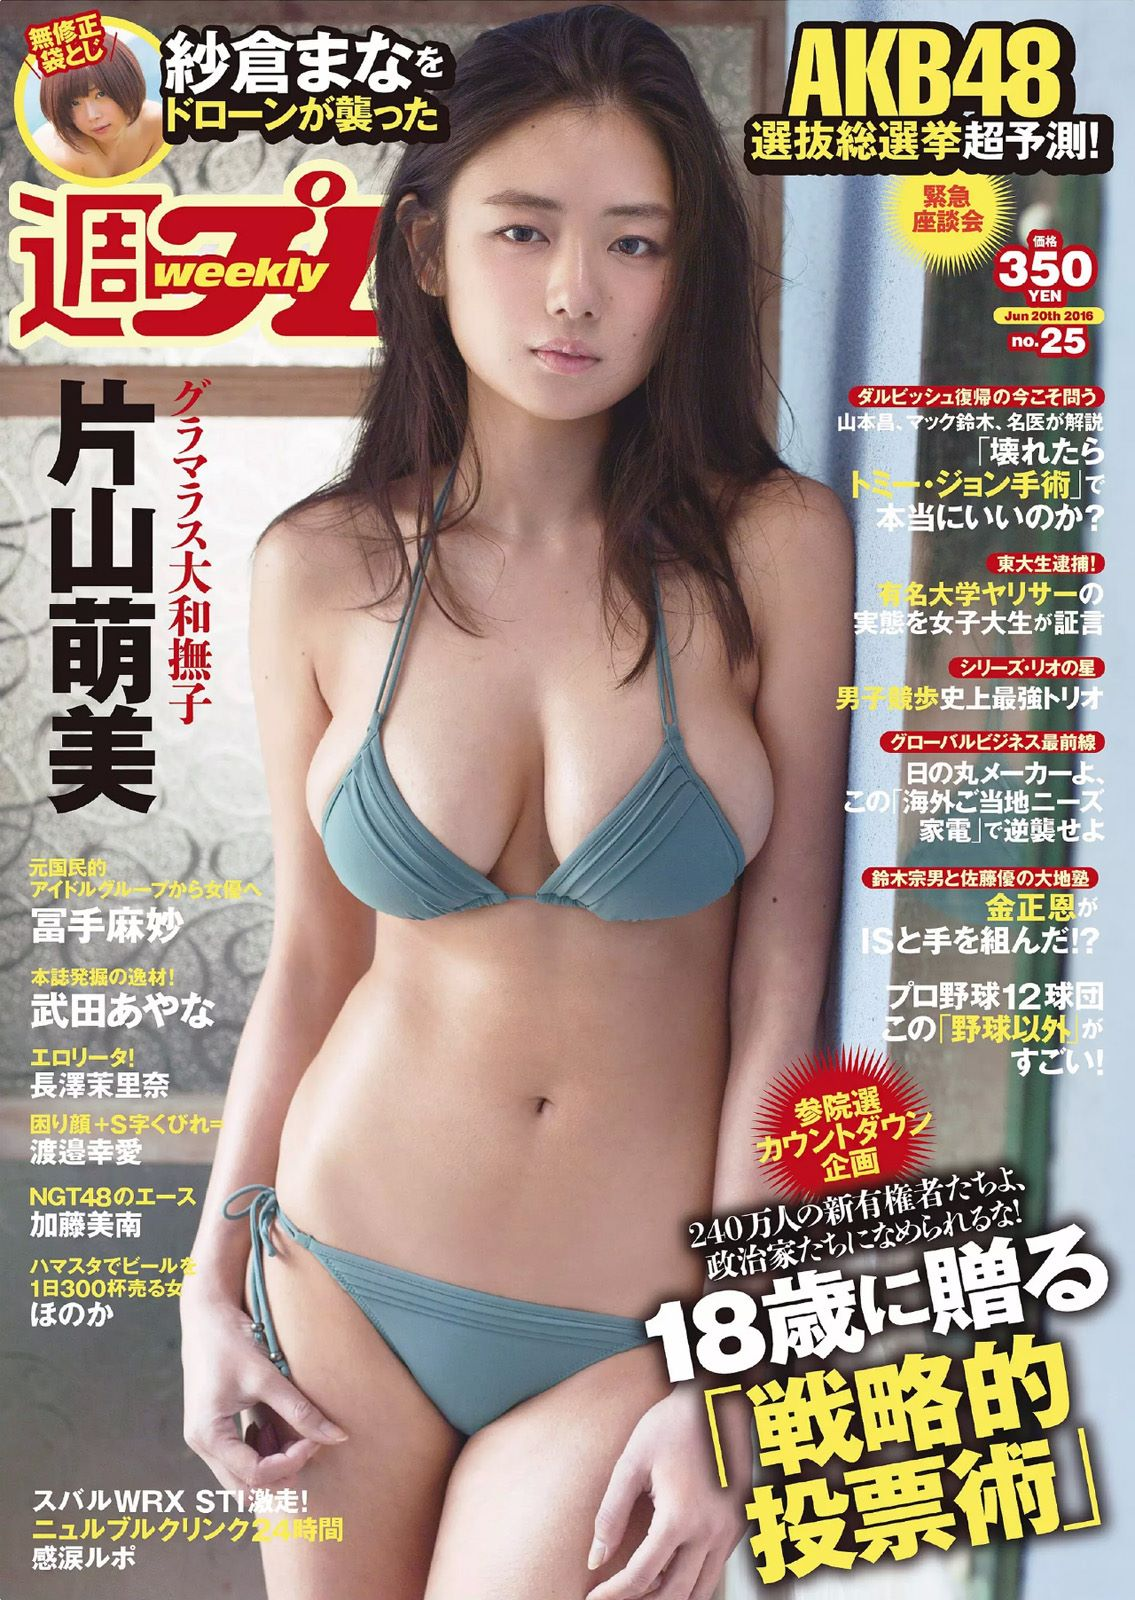 20170410.2345.4 Weekly Playboy (2016.25) 001 (JPOP.ru).jpg